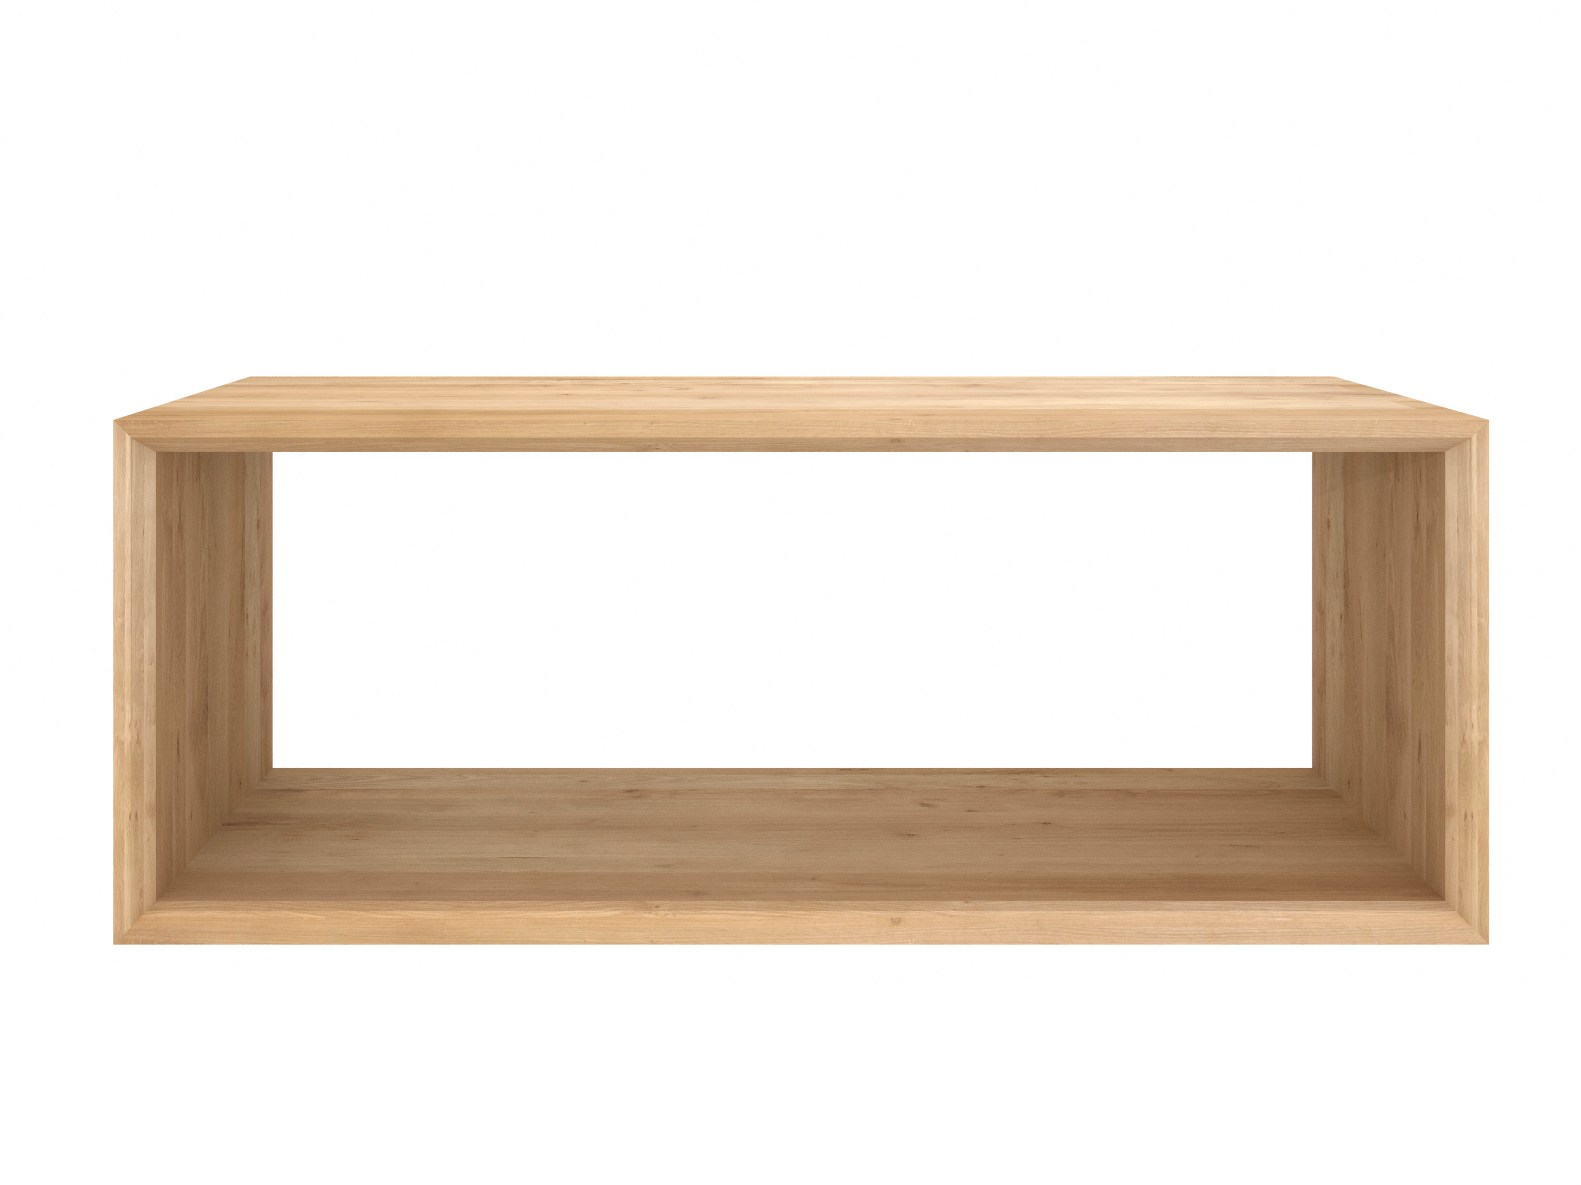 Oak Cube Coffee Table By Ethnicraft